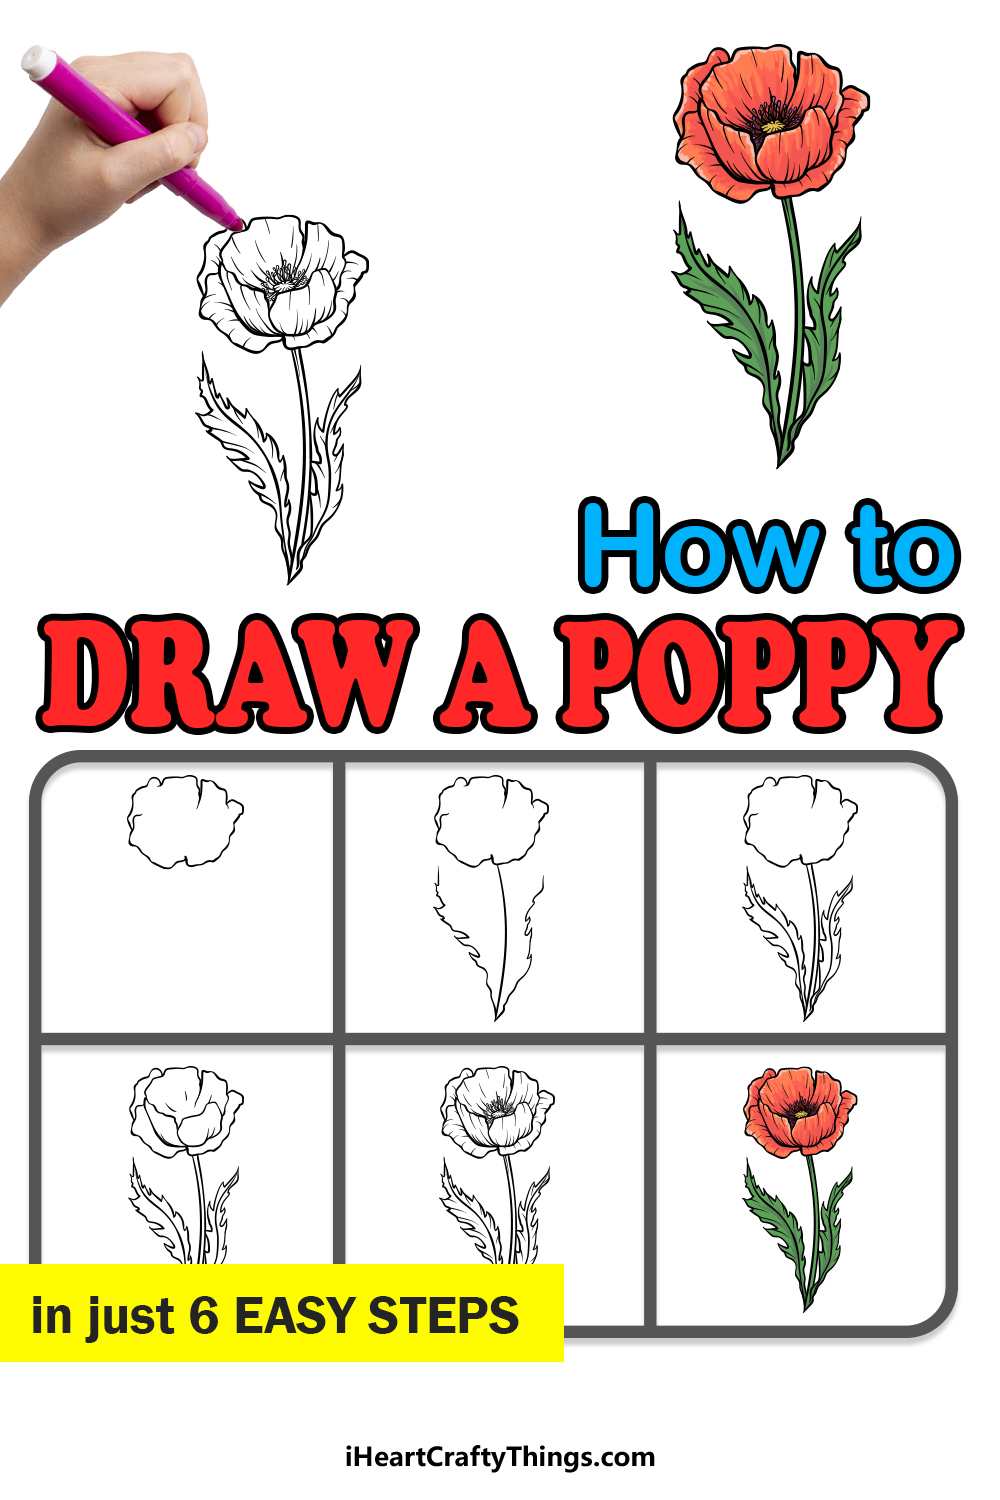 how to draw a poppy in 6 easy steps